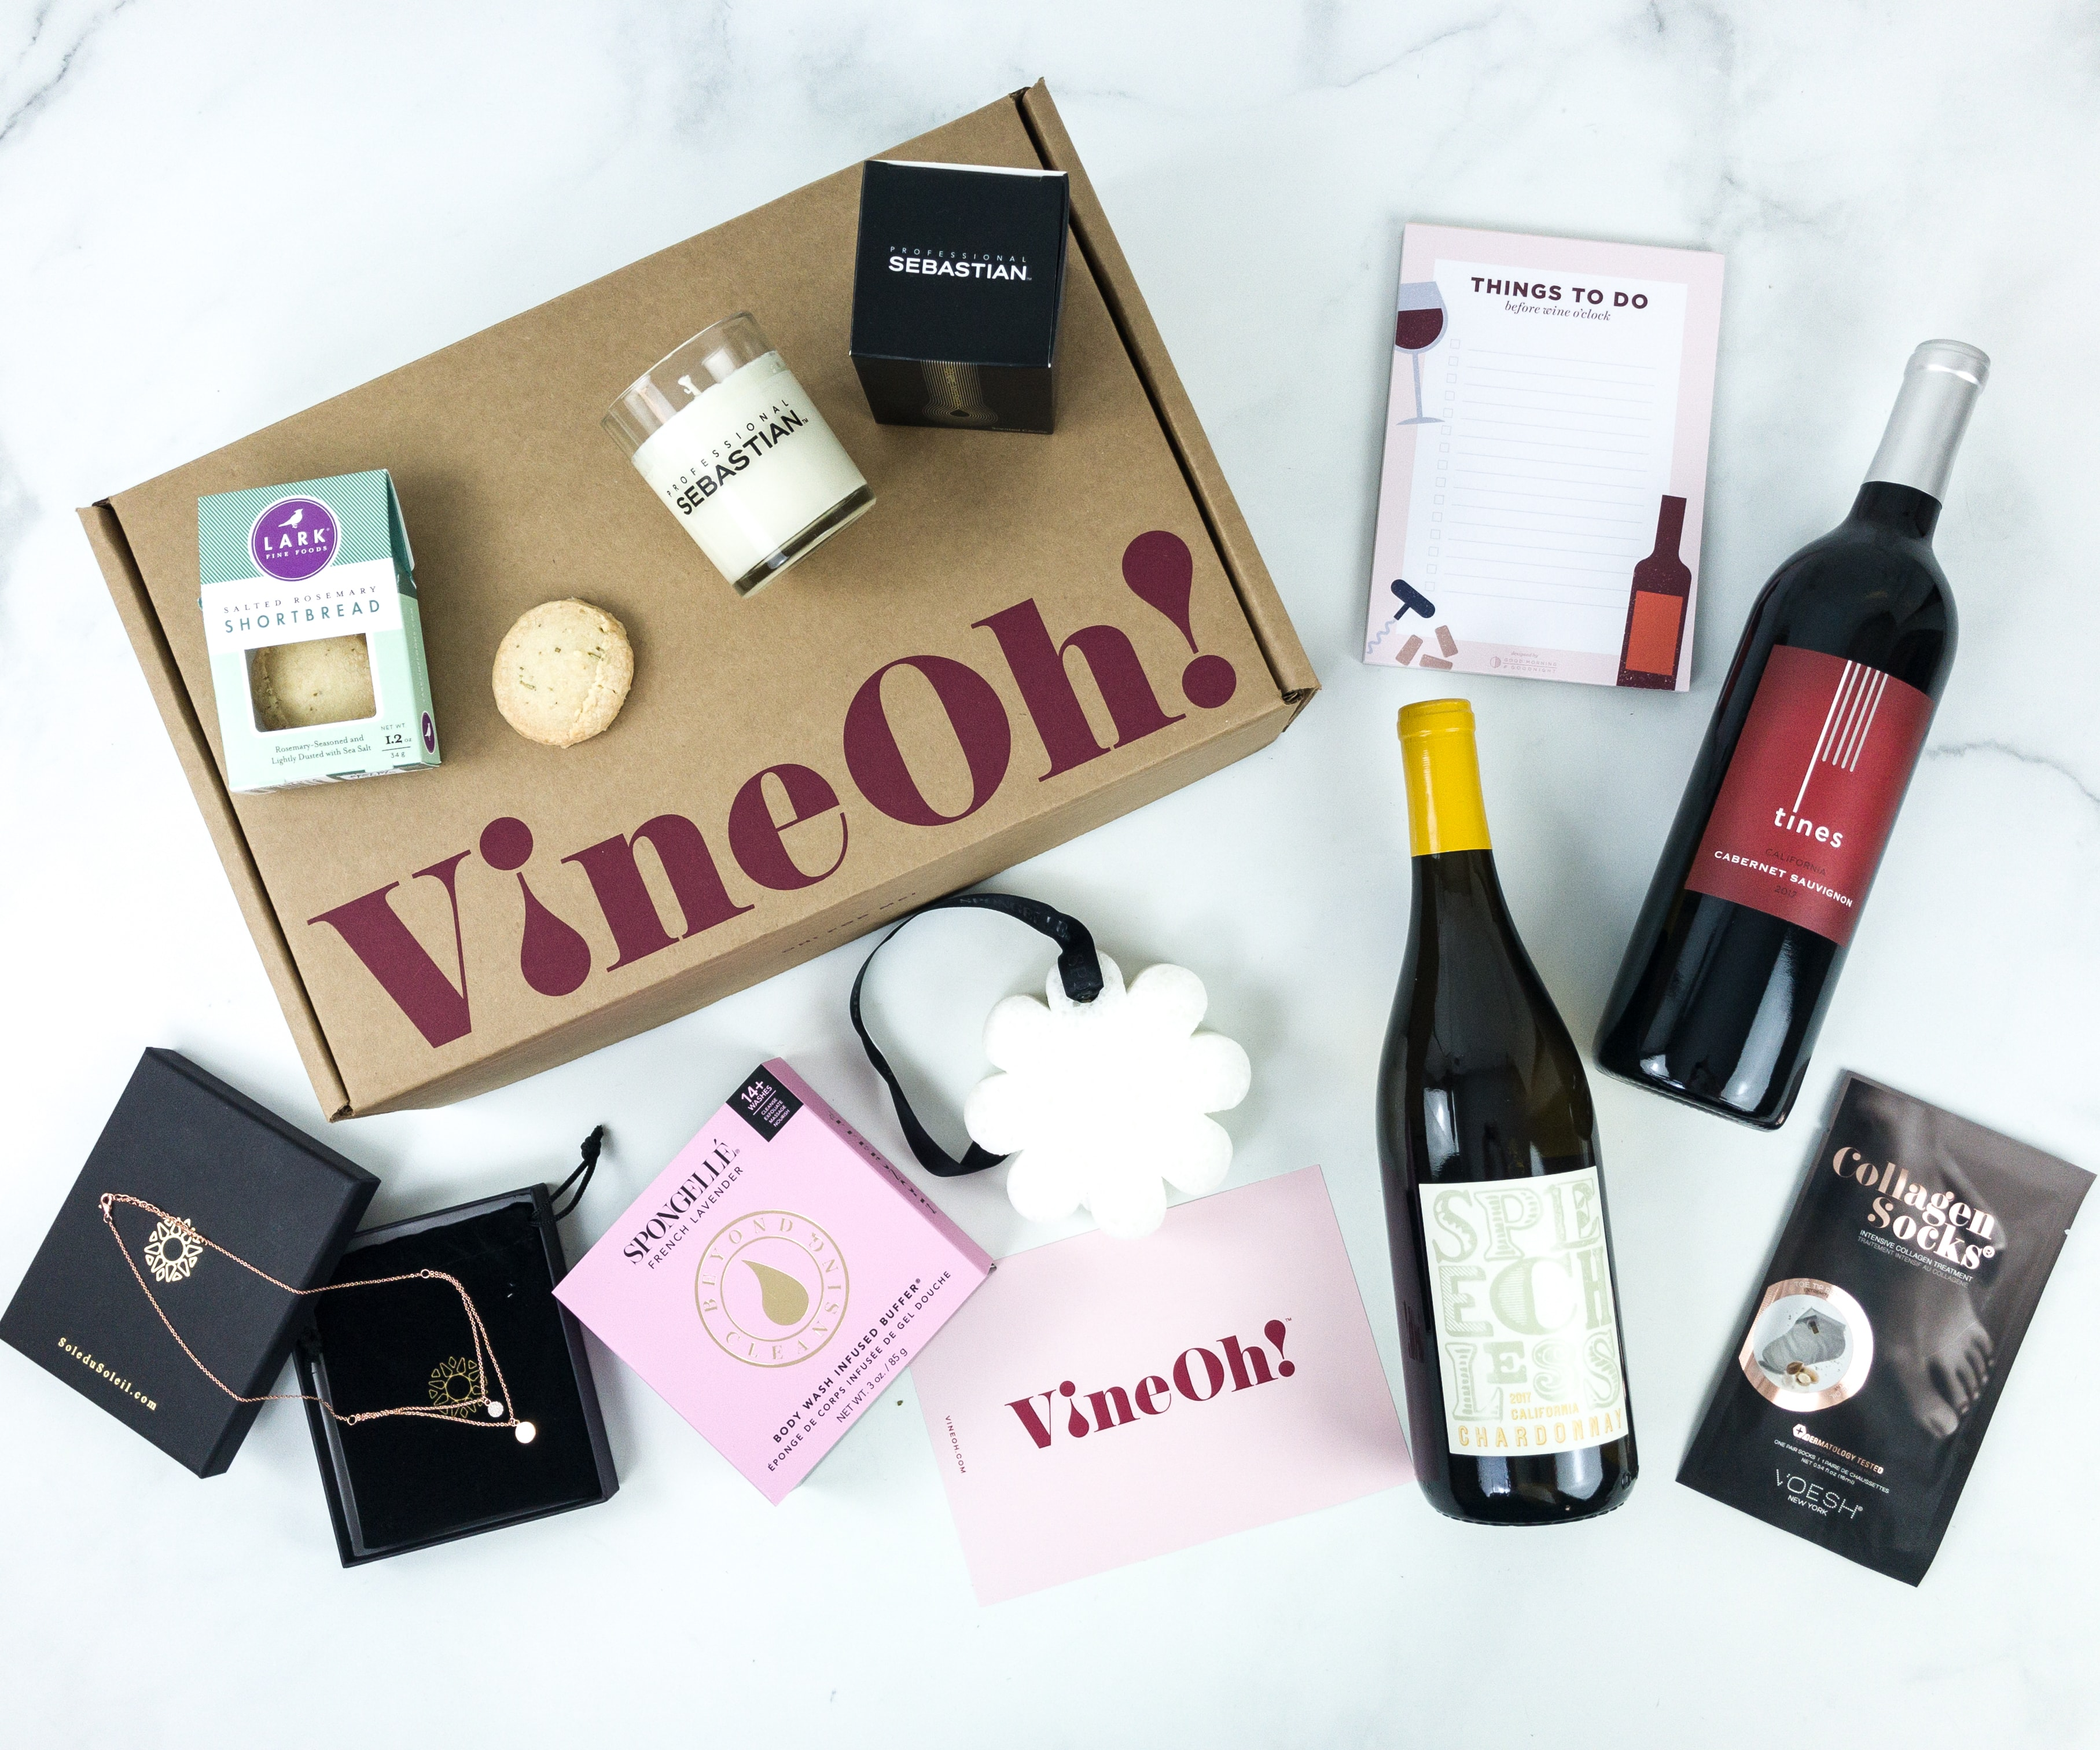 Vine Oh! Fall 2019 Subscription Box Review + Coupon – OH! FOR ME! BOX